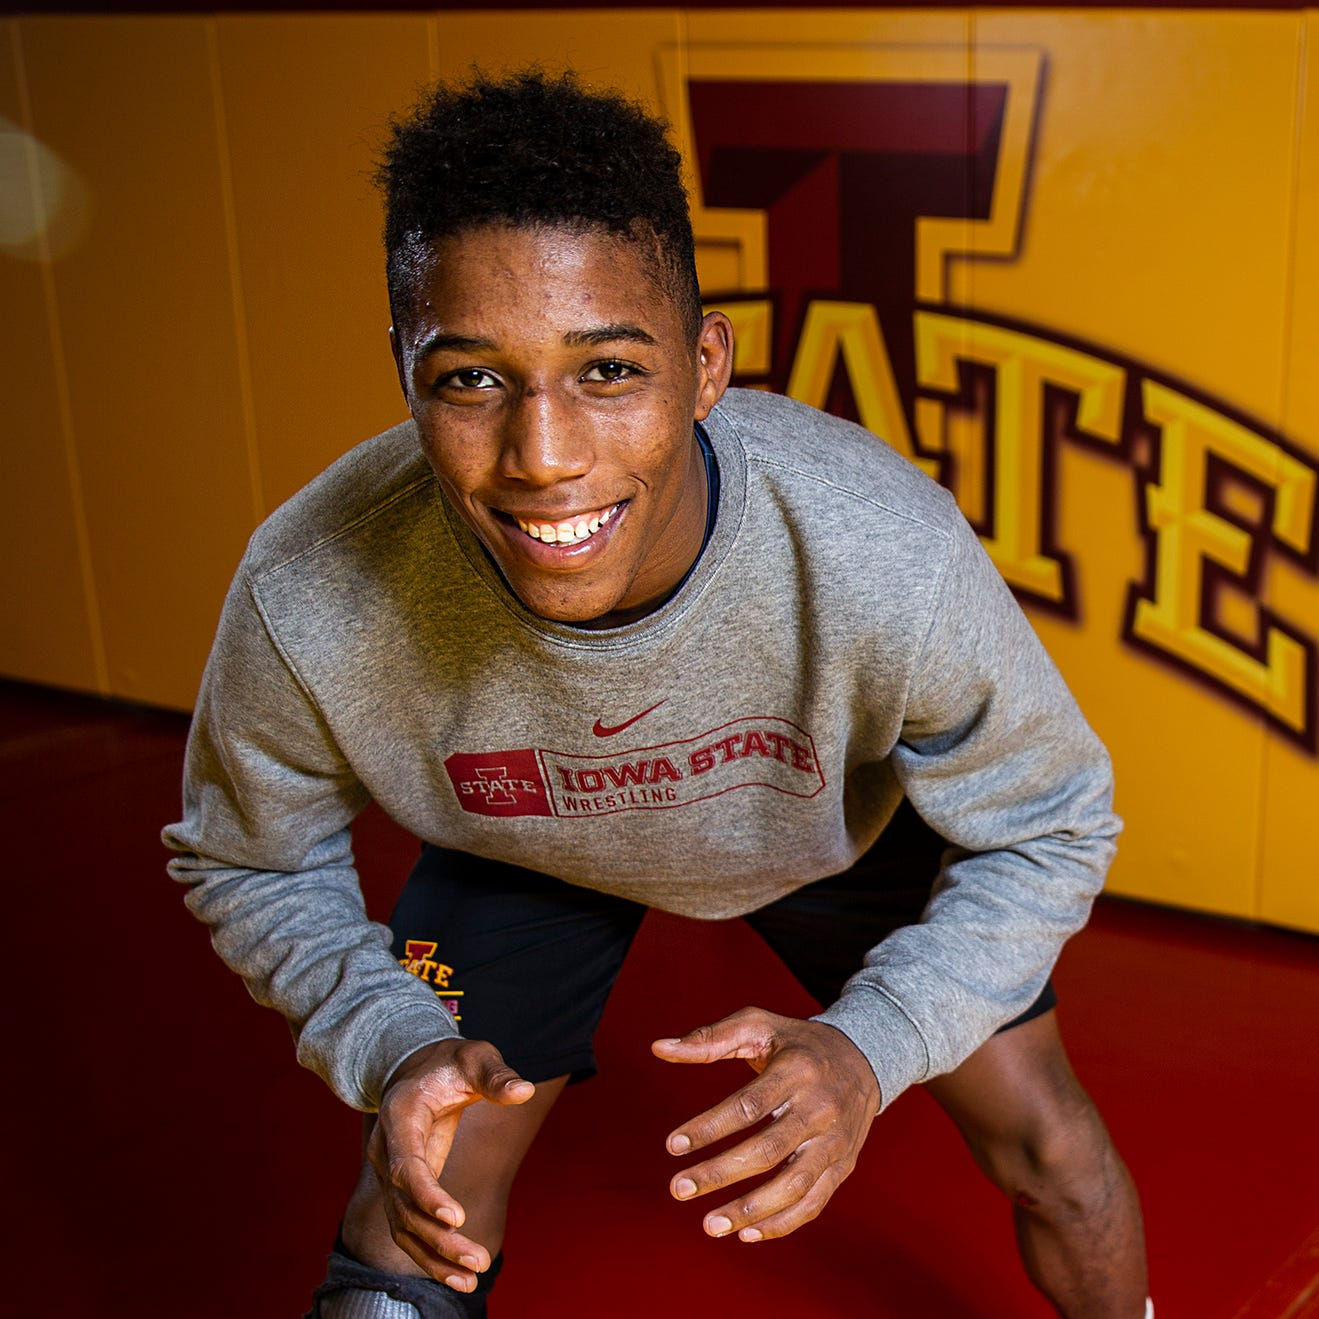 Iowa State's David Carr, Alburnett grad Tanner Sloan make Junior freestyle world wrestling team